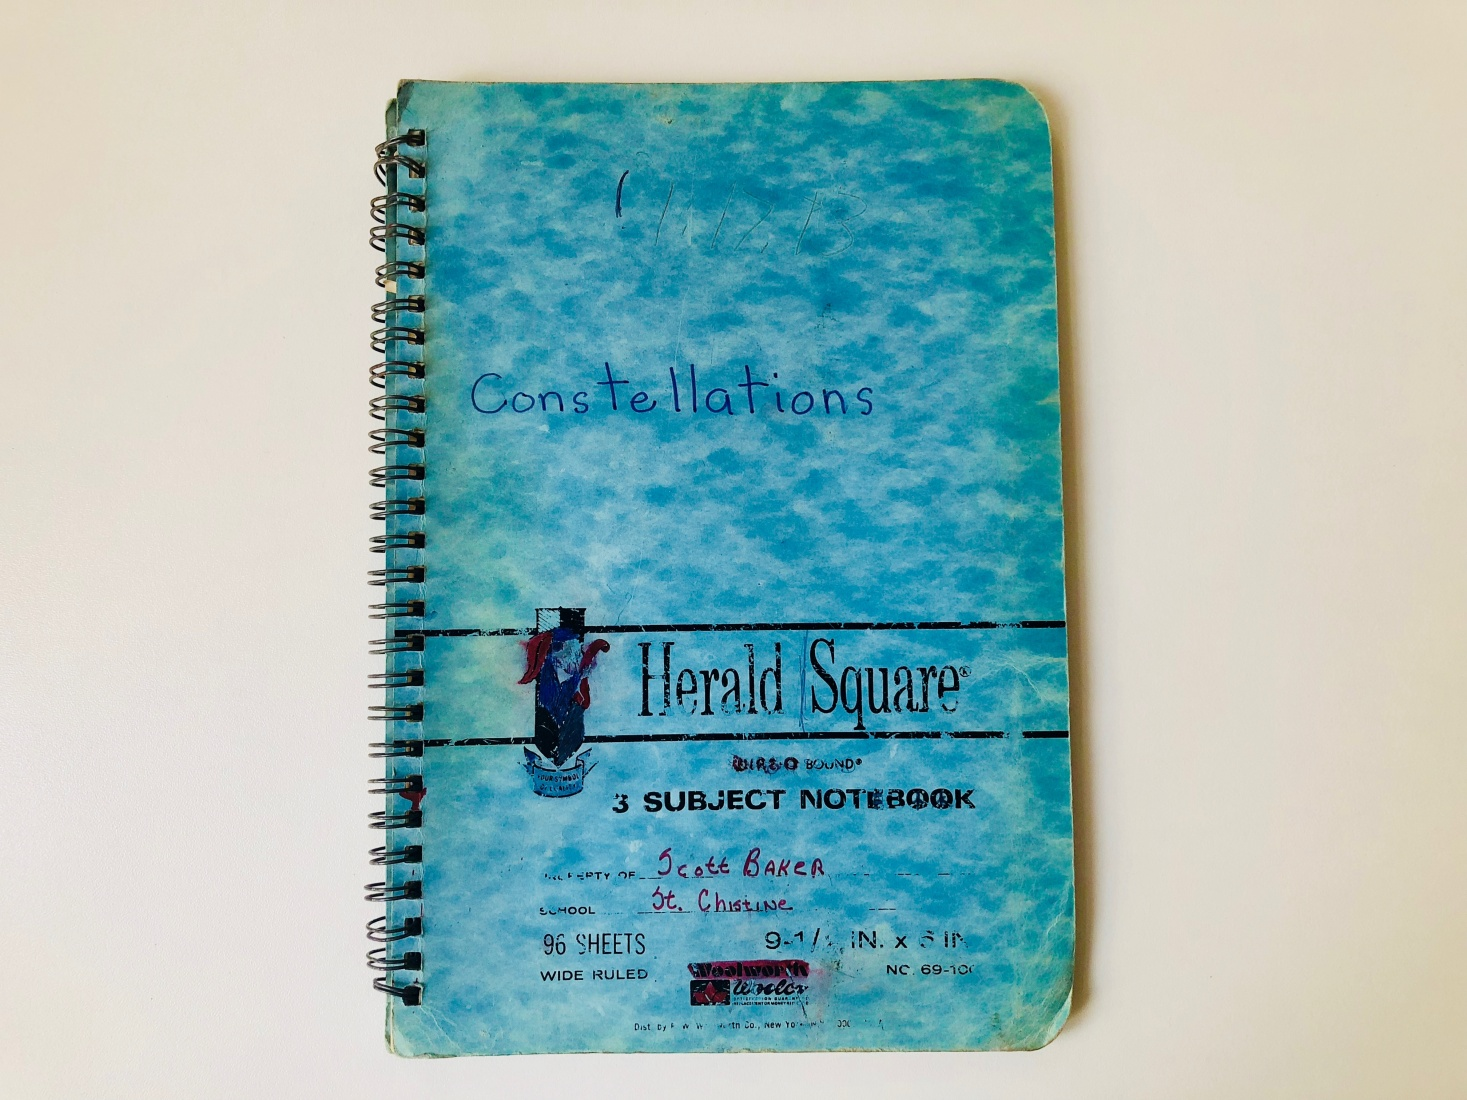 The front cover of the notebook Mark Baker and his brother filled out with their astronomical observations in a short-lived attempt to write a book on the 88 constellations in the sky.